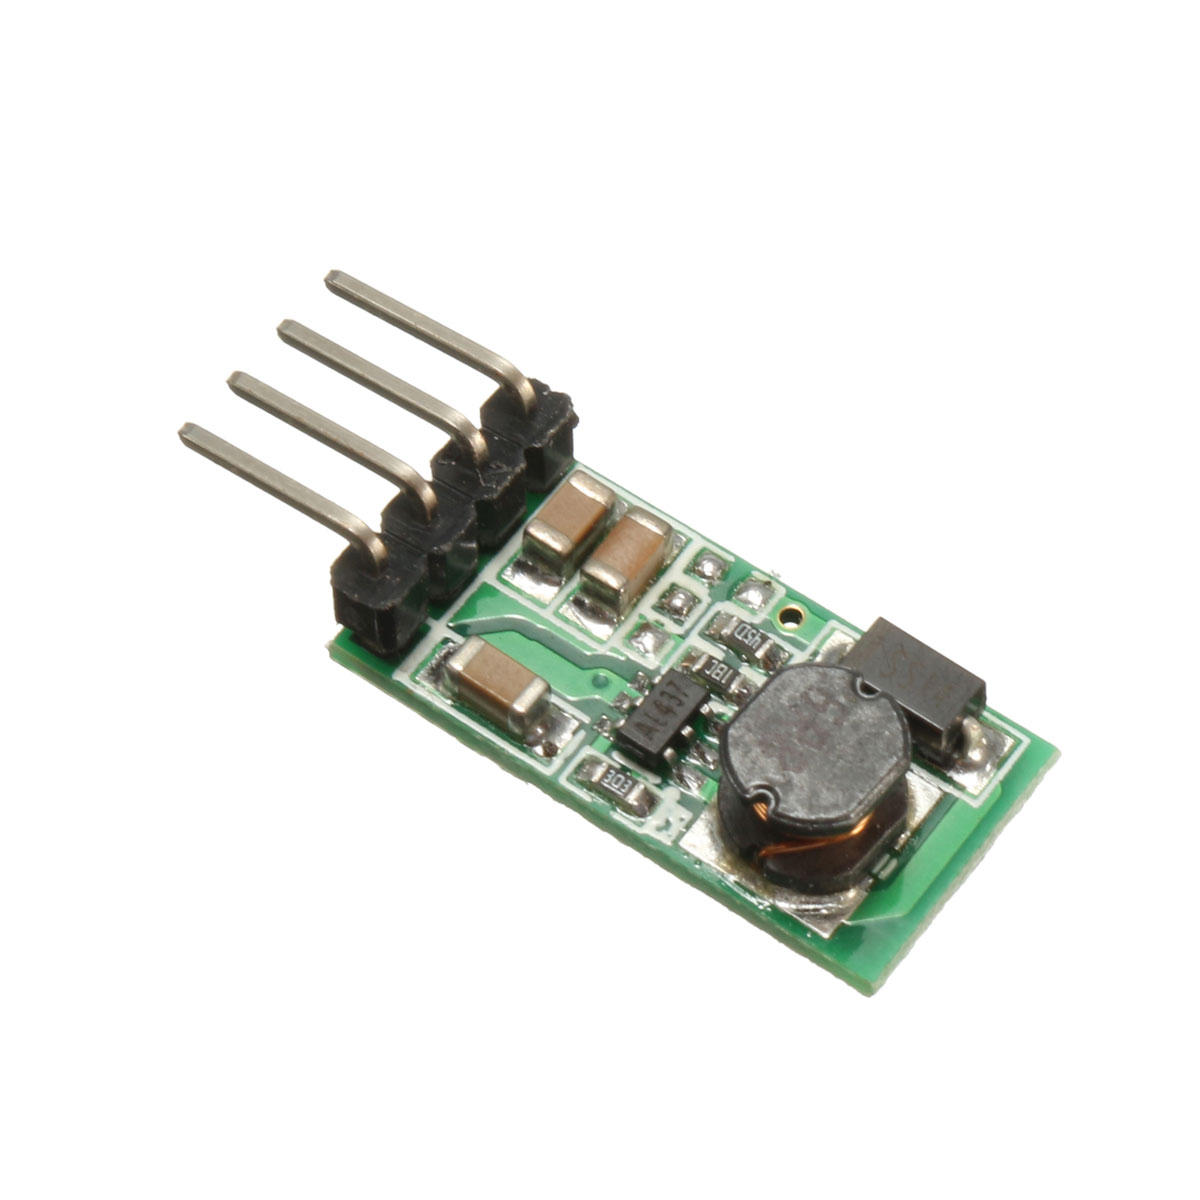 Symmetric 12v To 5v Converter Power Supply Circuits